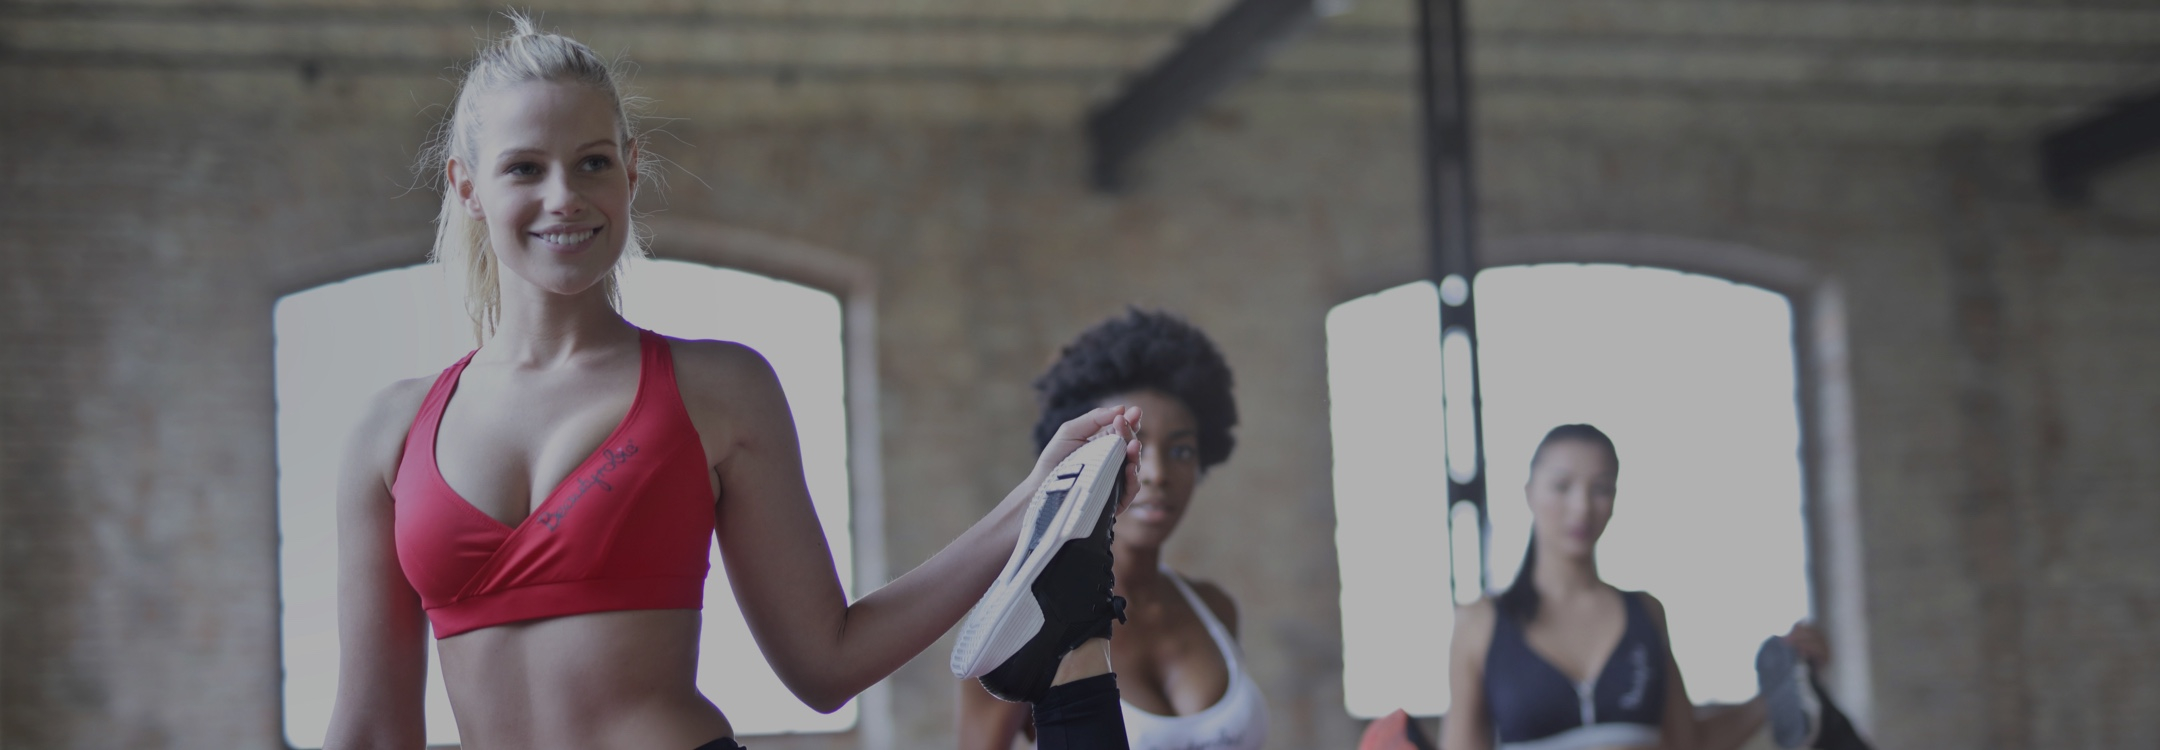 Image of three women in the gym, stretching before a group workout